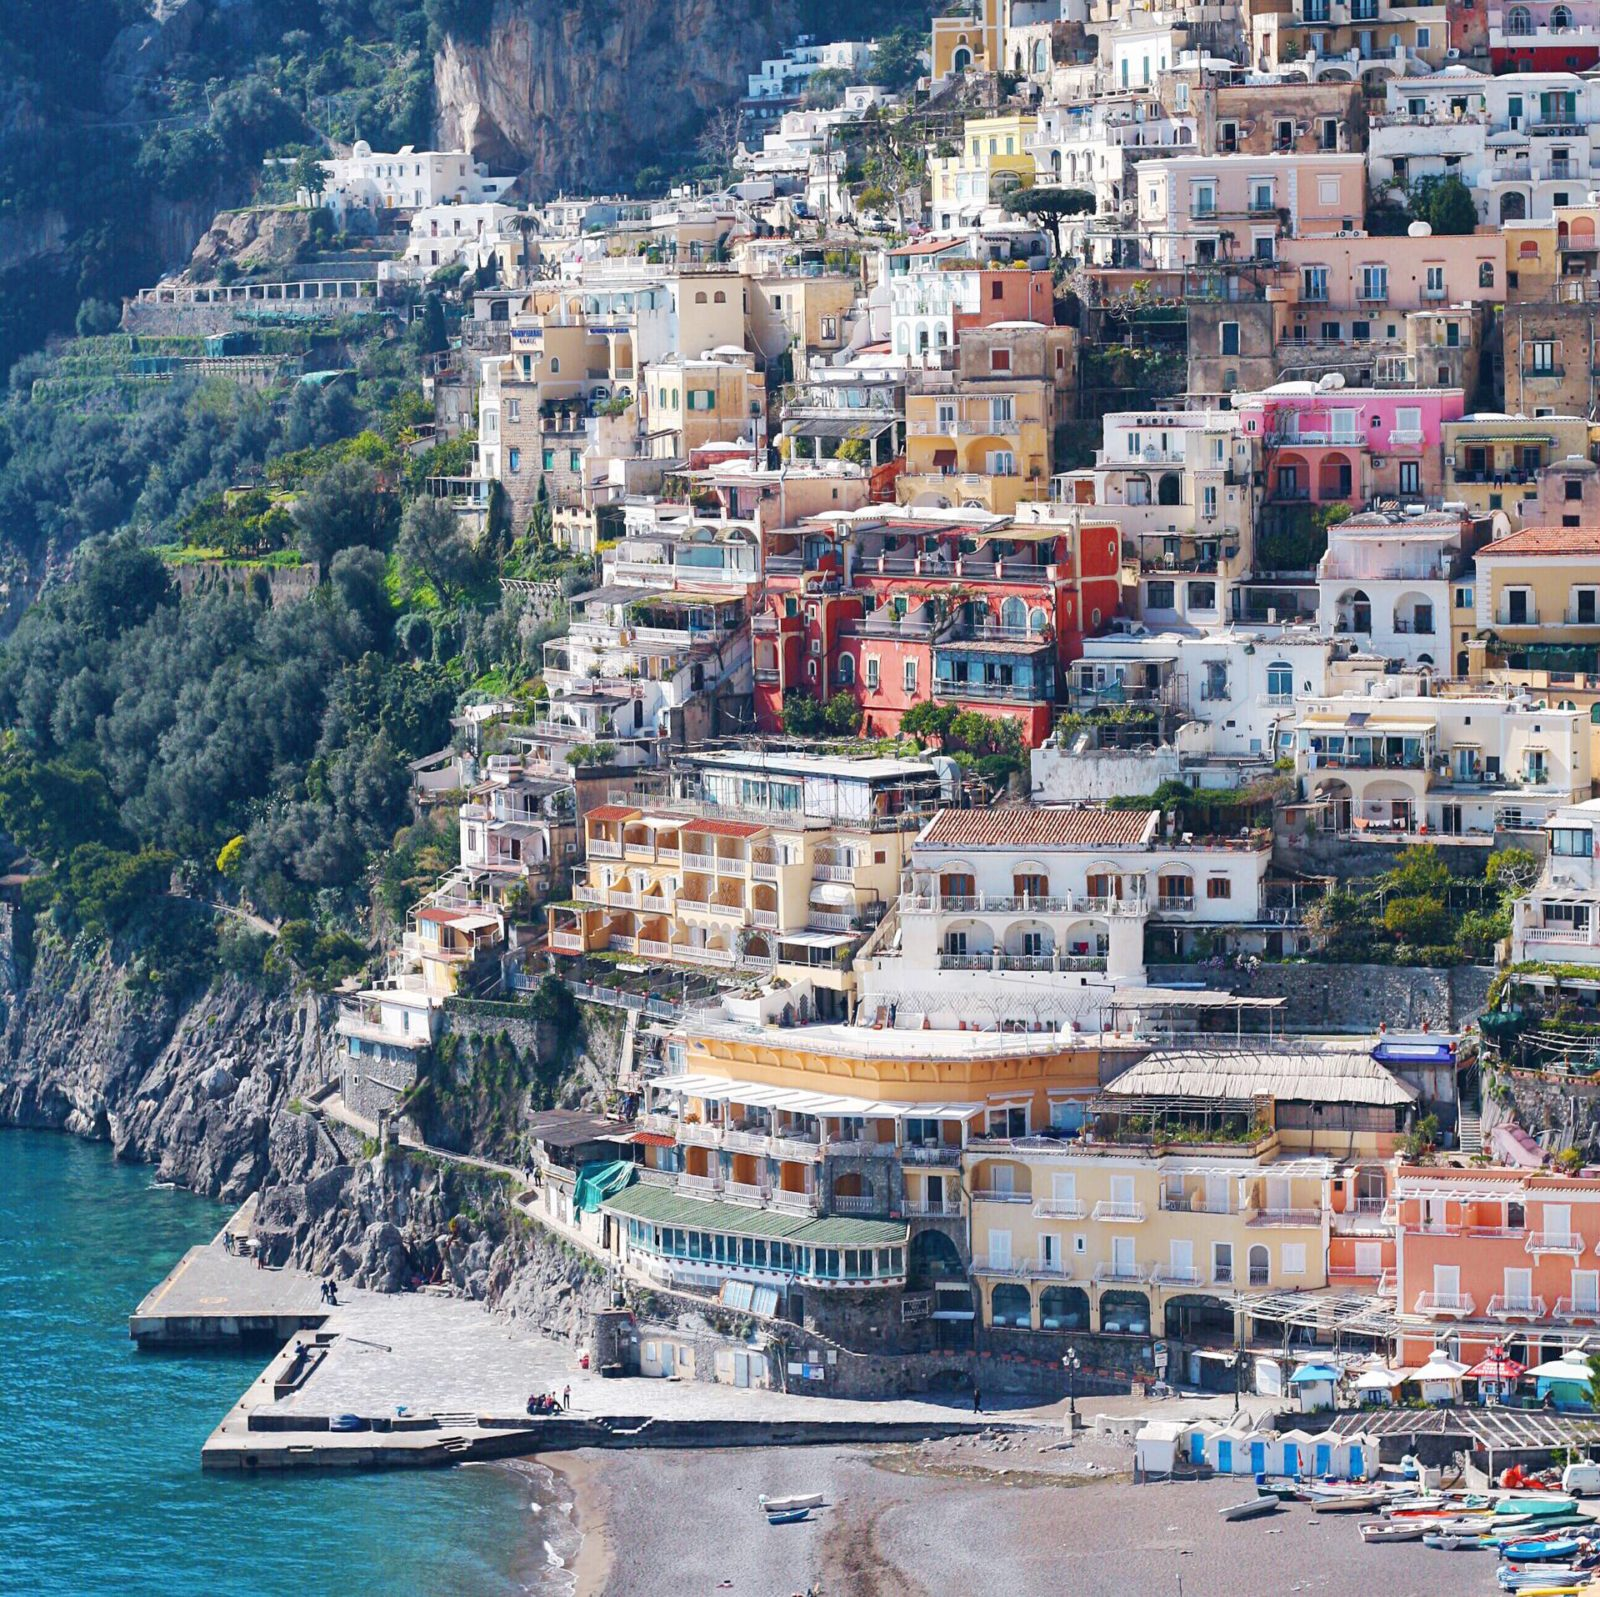 Positano, Italy | Gold-Hatted Lover